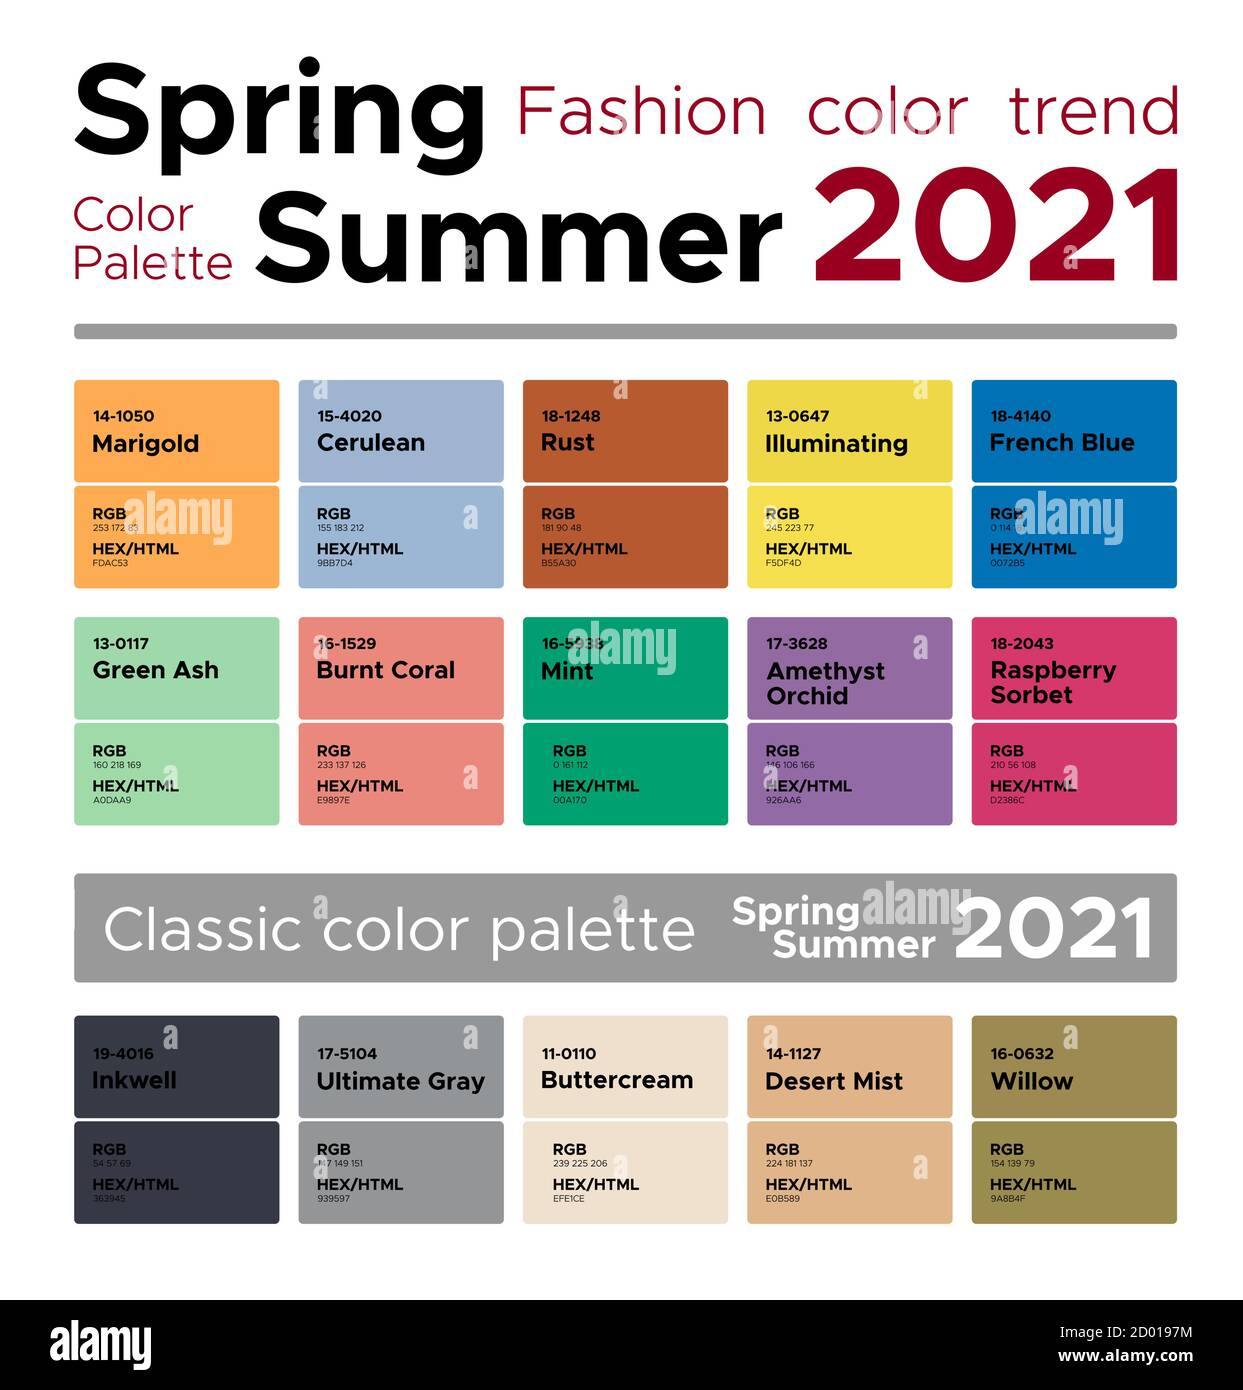 Fashion Color Trends Spring Summer 2021 Palette Fashion Colors Guide With Named Color Swatches Rgb Hex Colors Stock Vector Image Art Alamy